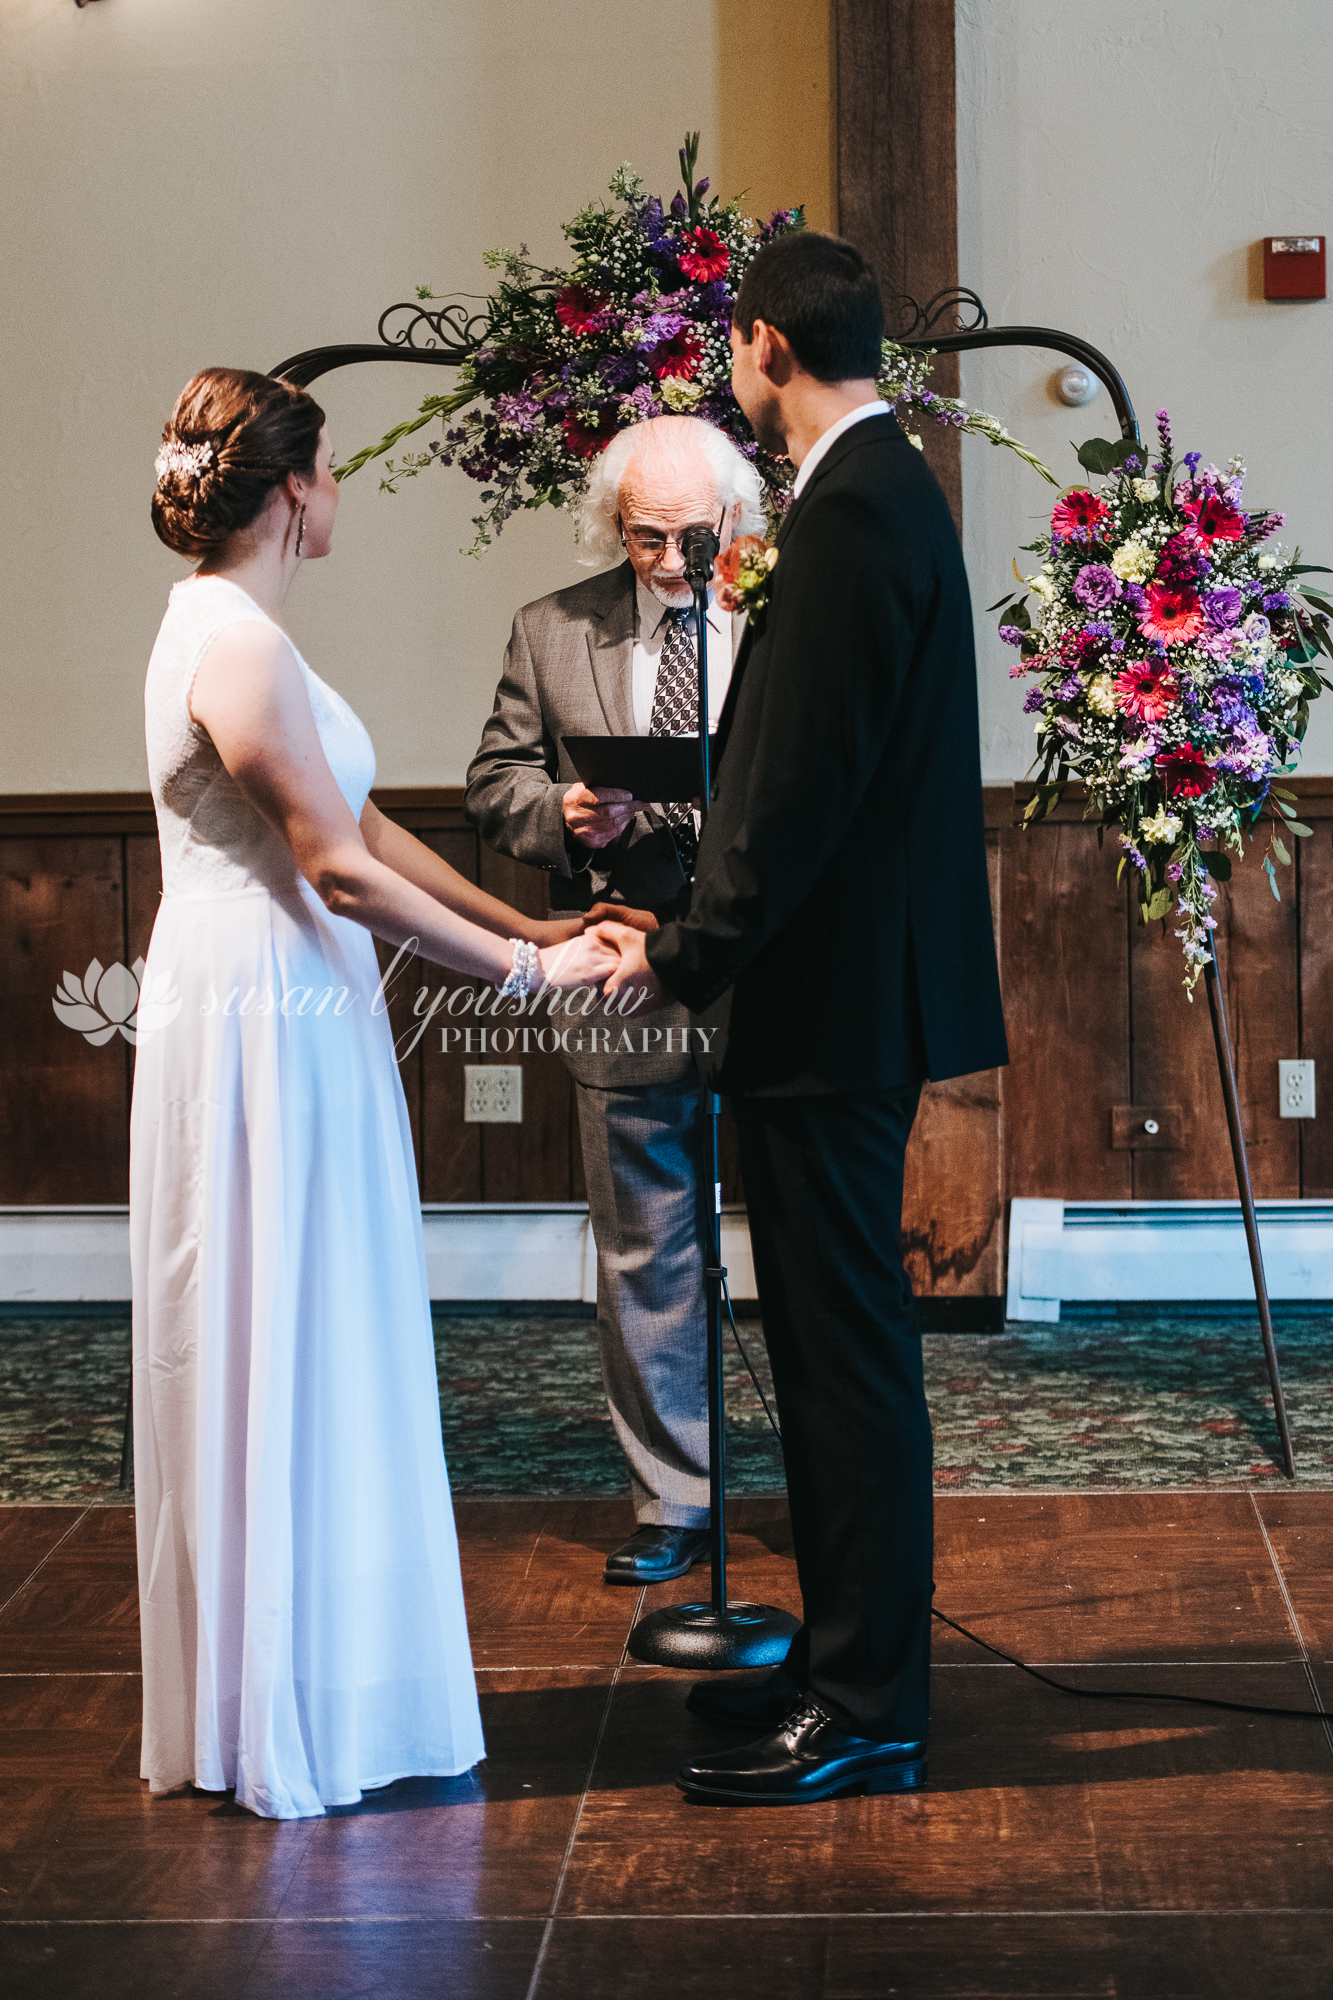 Adena and  Erik Wedding 05-17-2019 SLY Photography-89.jpg